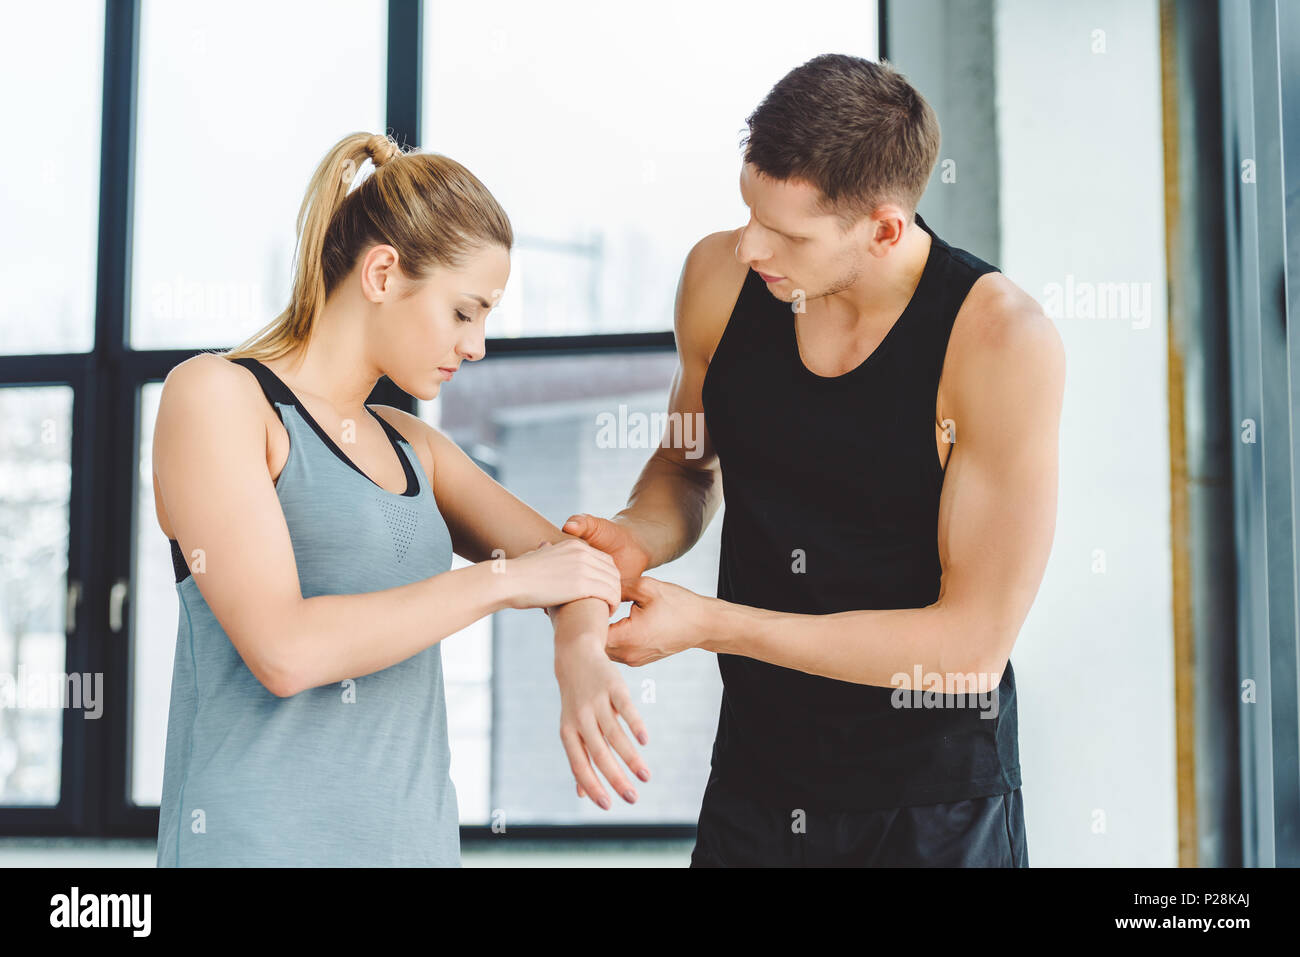 portrait of trainer holding injured arm of woman in gym - Stock Image